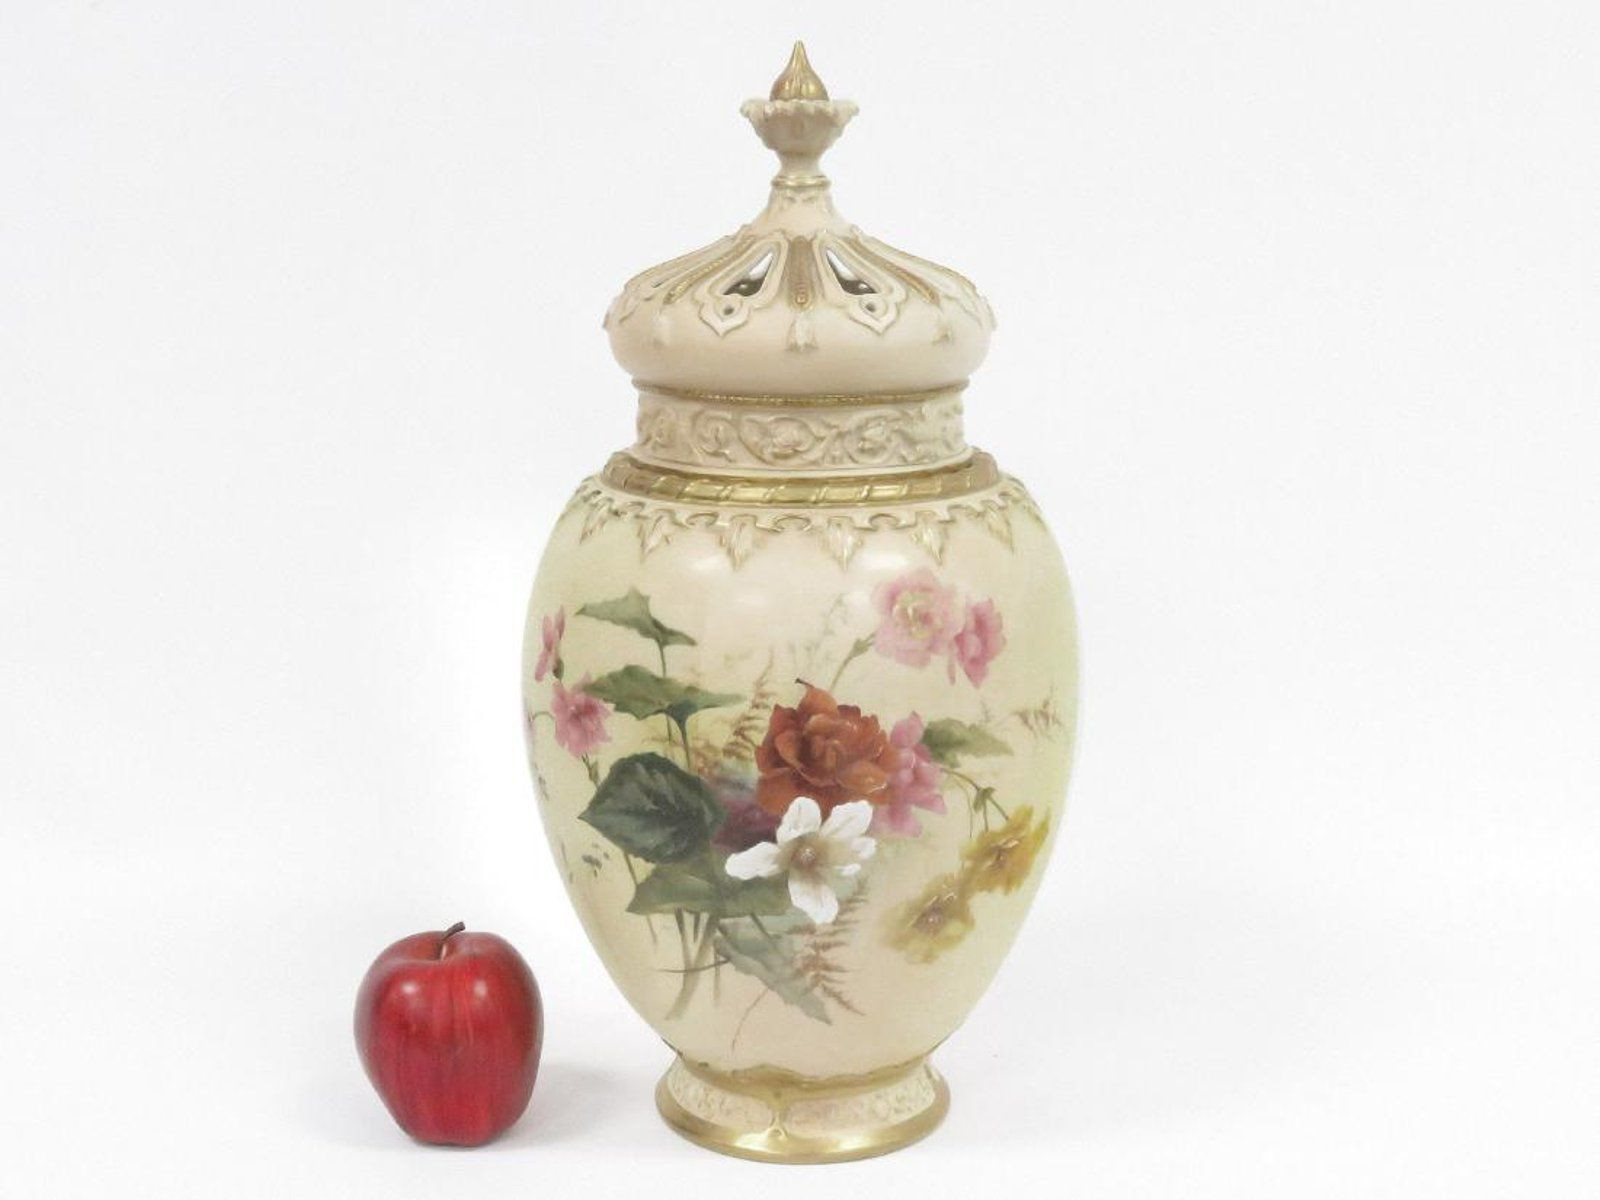 Fine China Vase Of Royal Worcester Decorated Porcelain Potpourri Vase Royal Intended for Royal Worcester Decorated Porcelain Potpourri Vase